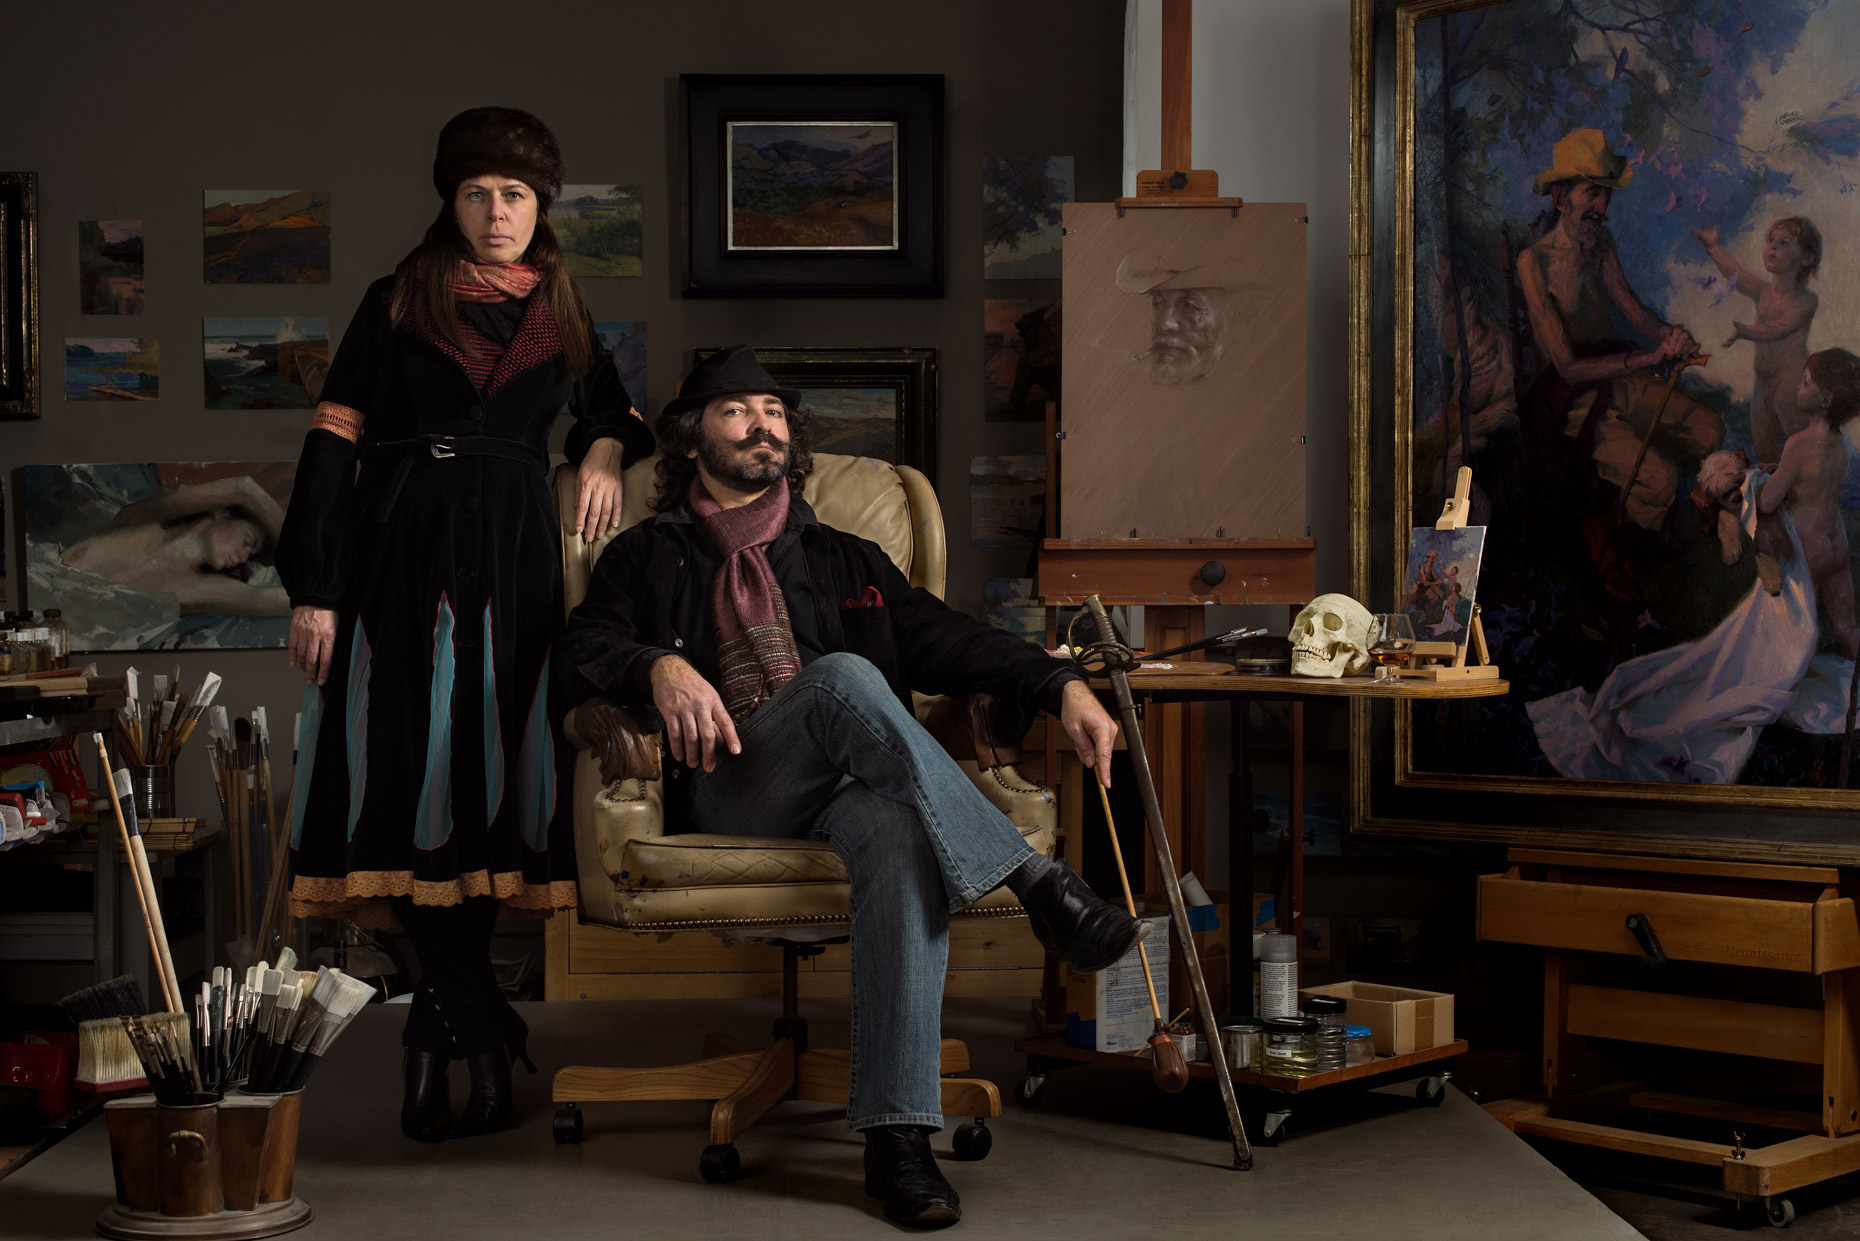 Artist-Alexey-Steele-and-Wife-Olga-in-His-Studio